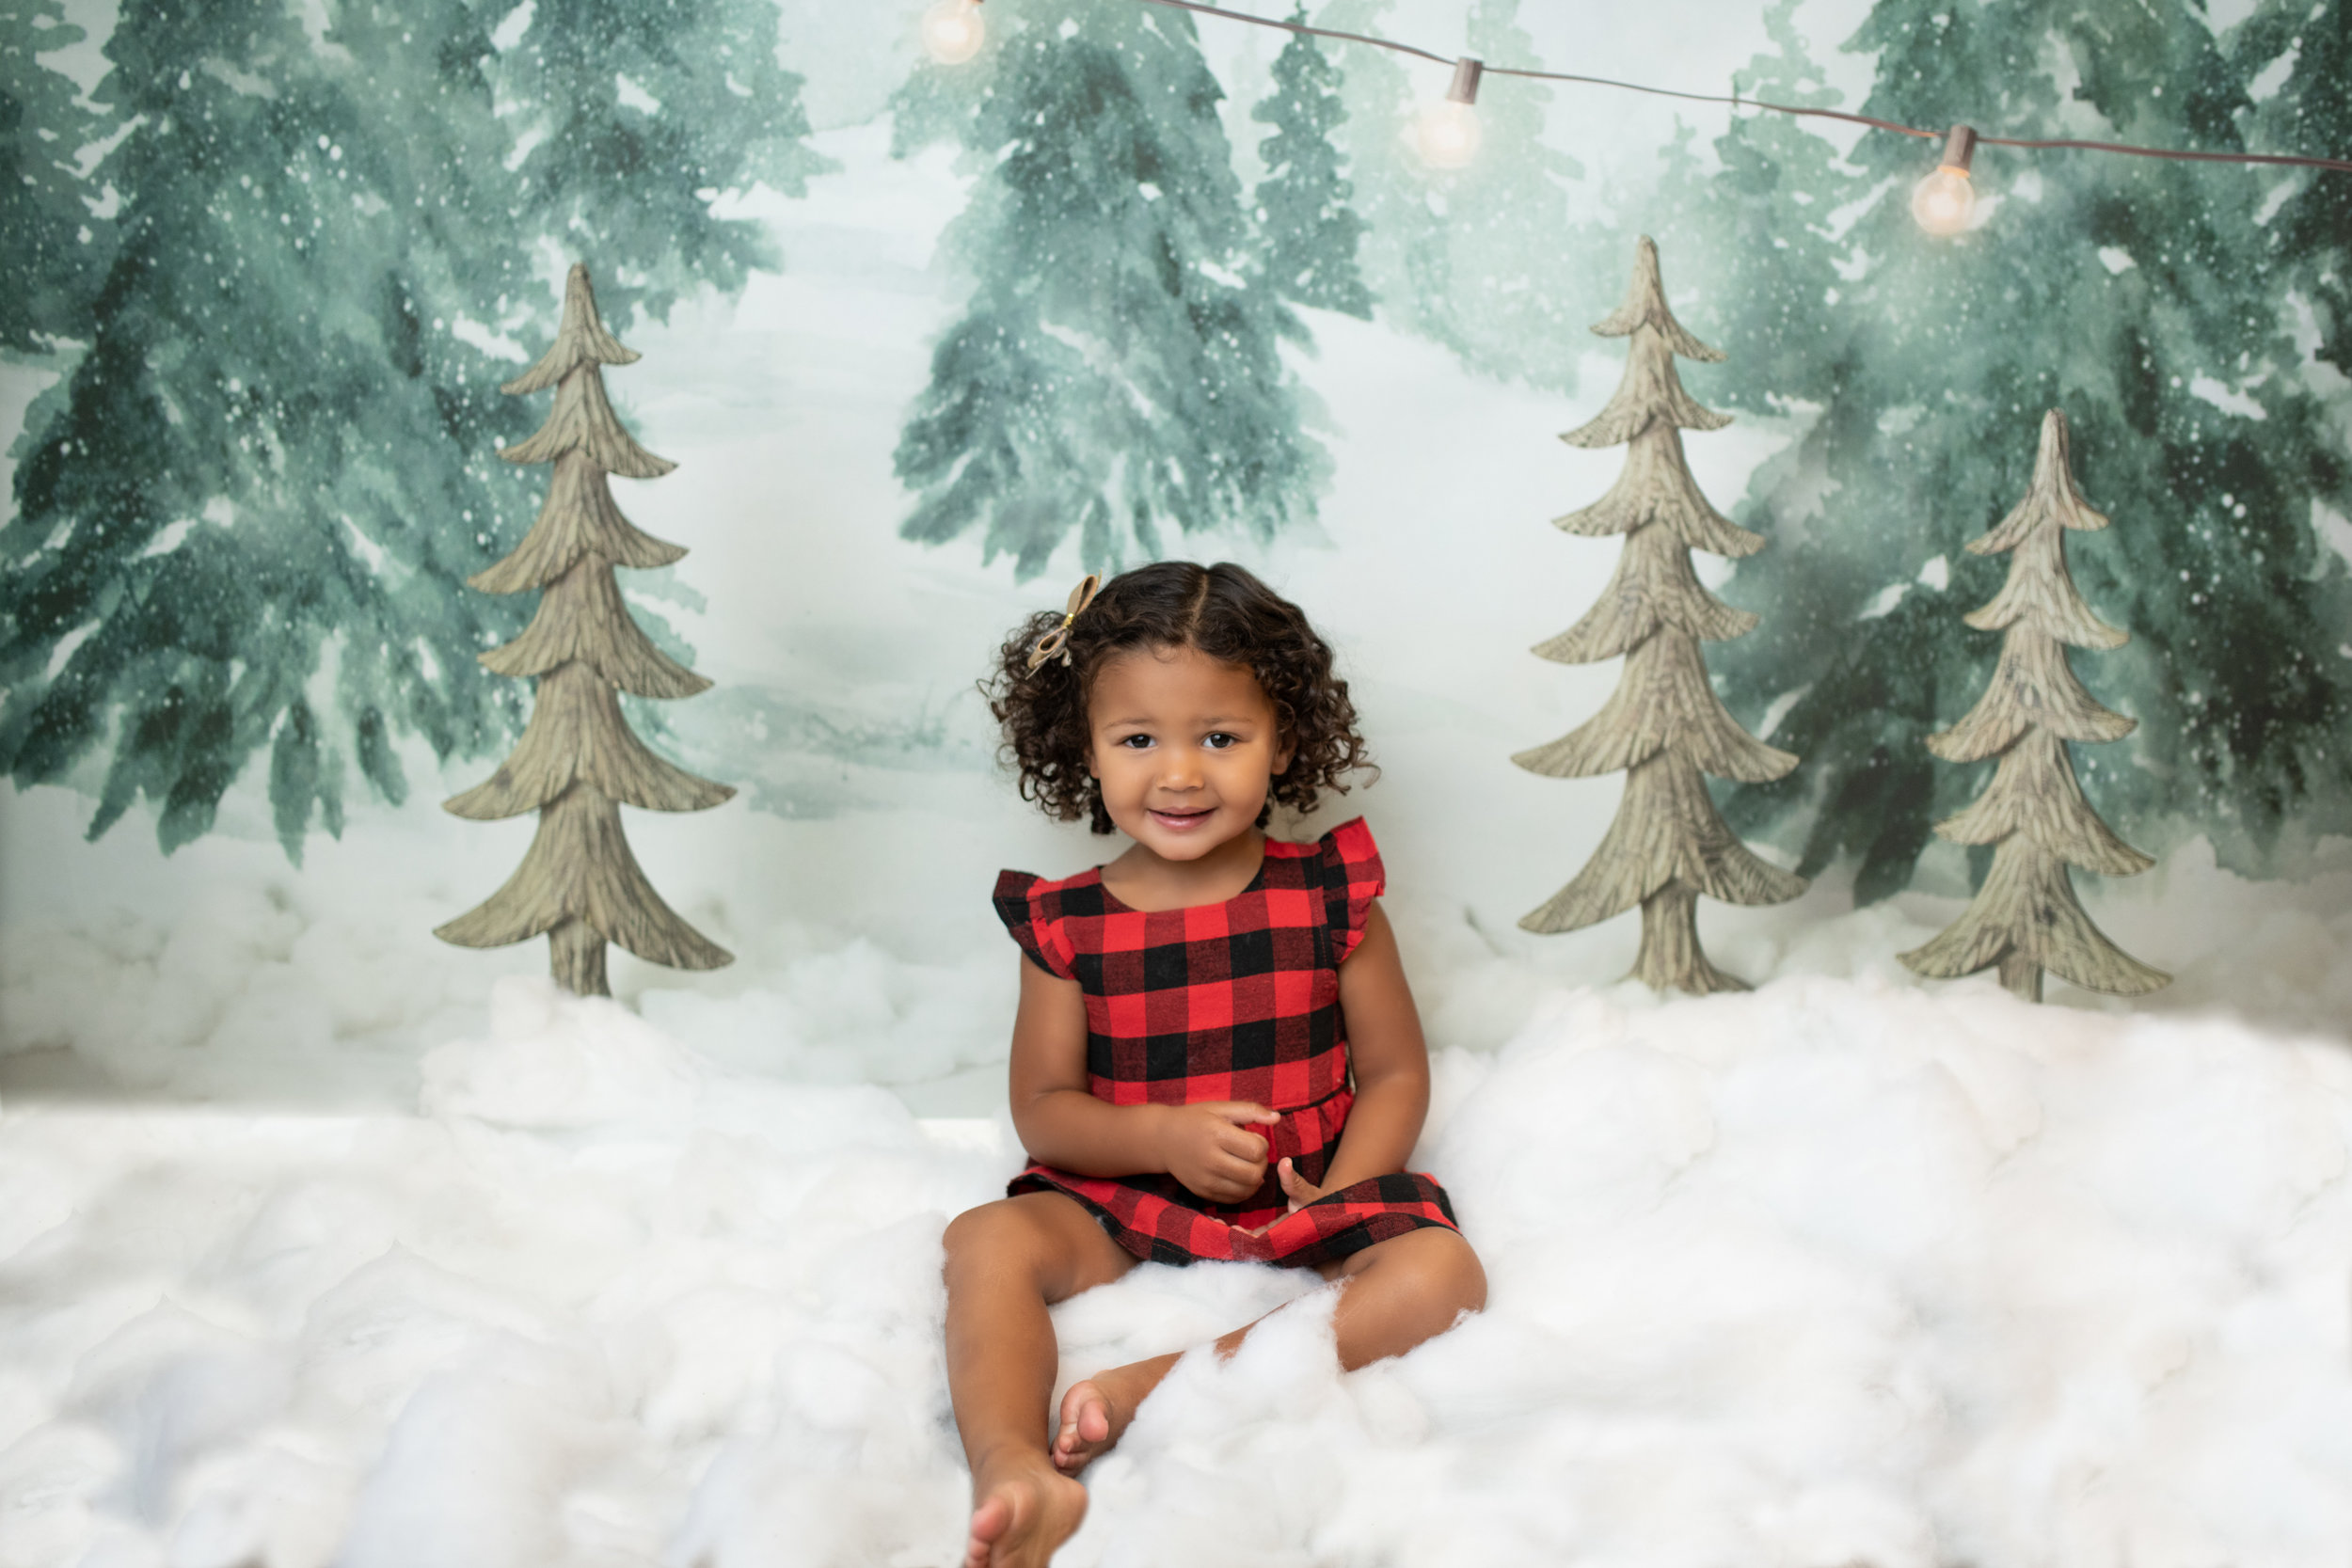 Snowy Studio Session - (Anytime in Nov. and Dec.)- We are bringing the magic indoors with our special studio snow sessions. We will have two sets to choose from: Winter Wonderland and Milk and Cookies for Santa. These sessions can be booked anytime in Nov. and Dec.